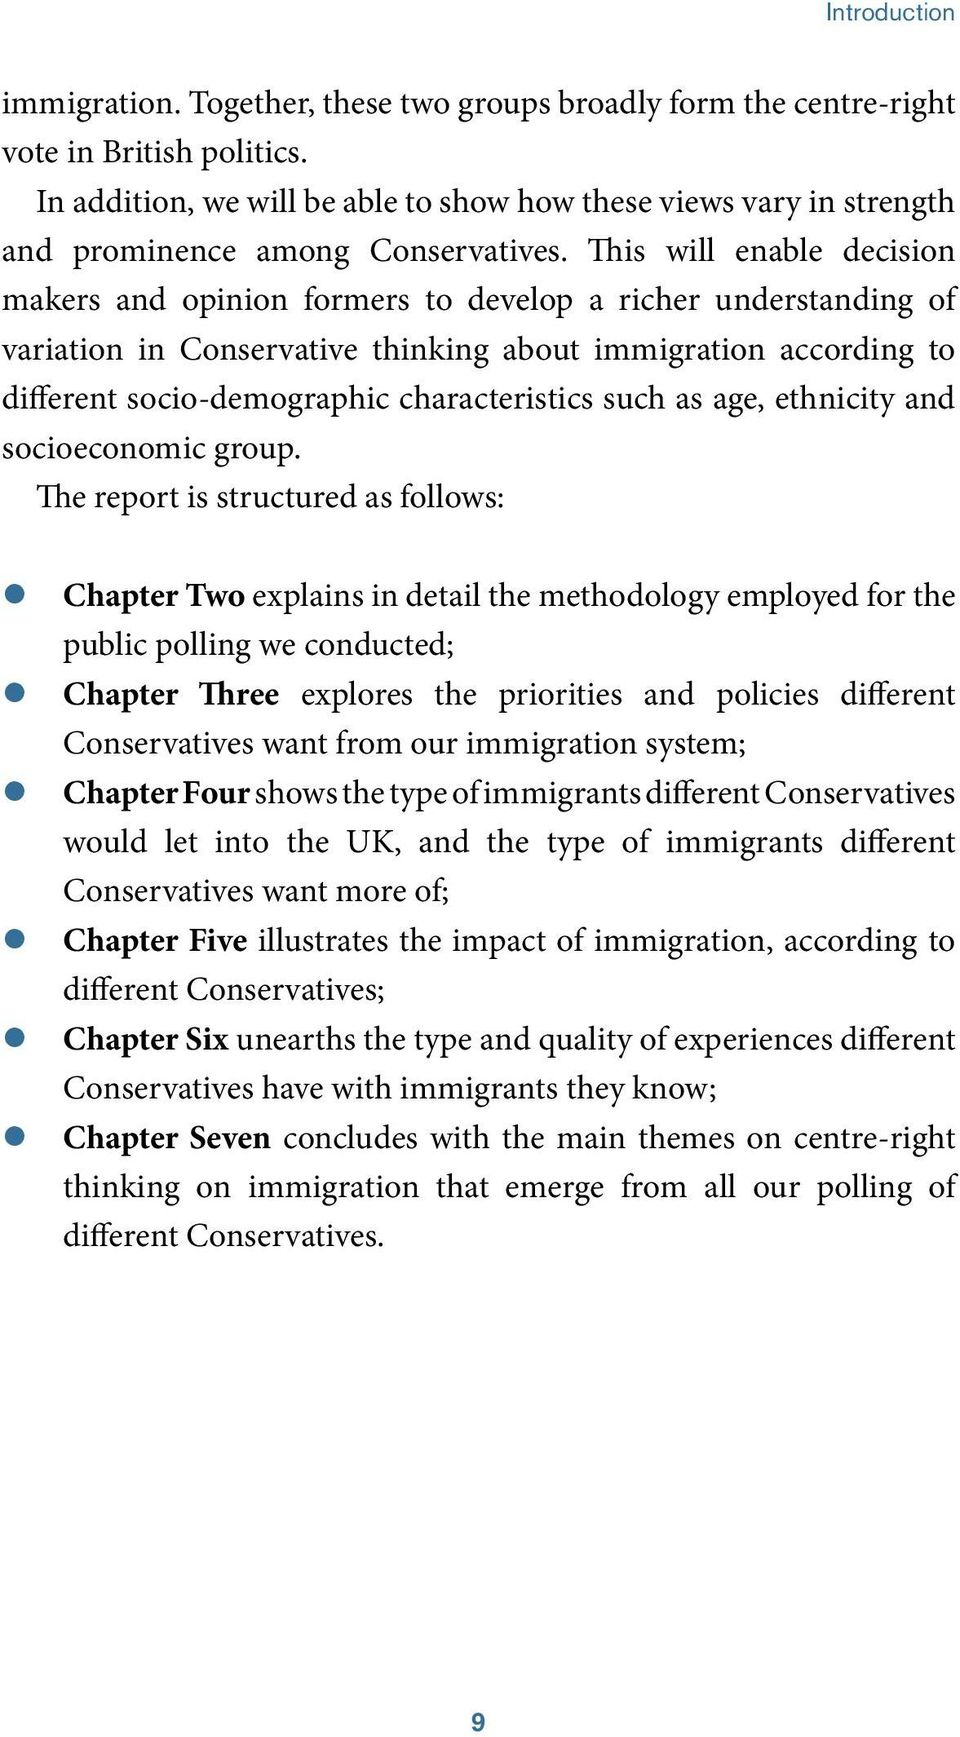 This will enable decision makers and opinion formers to develop a richer understanding of variation in Conservative thinking about immigration according to different socio-demographic characteristics